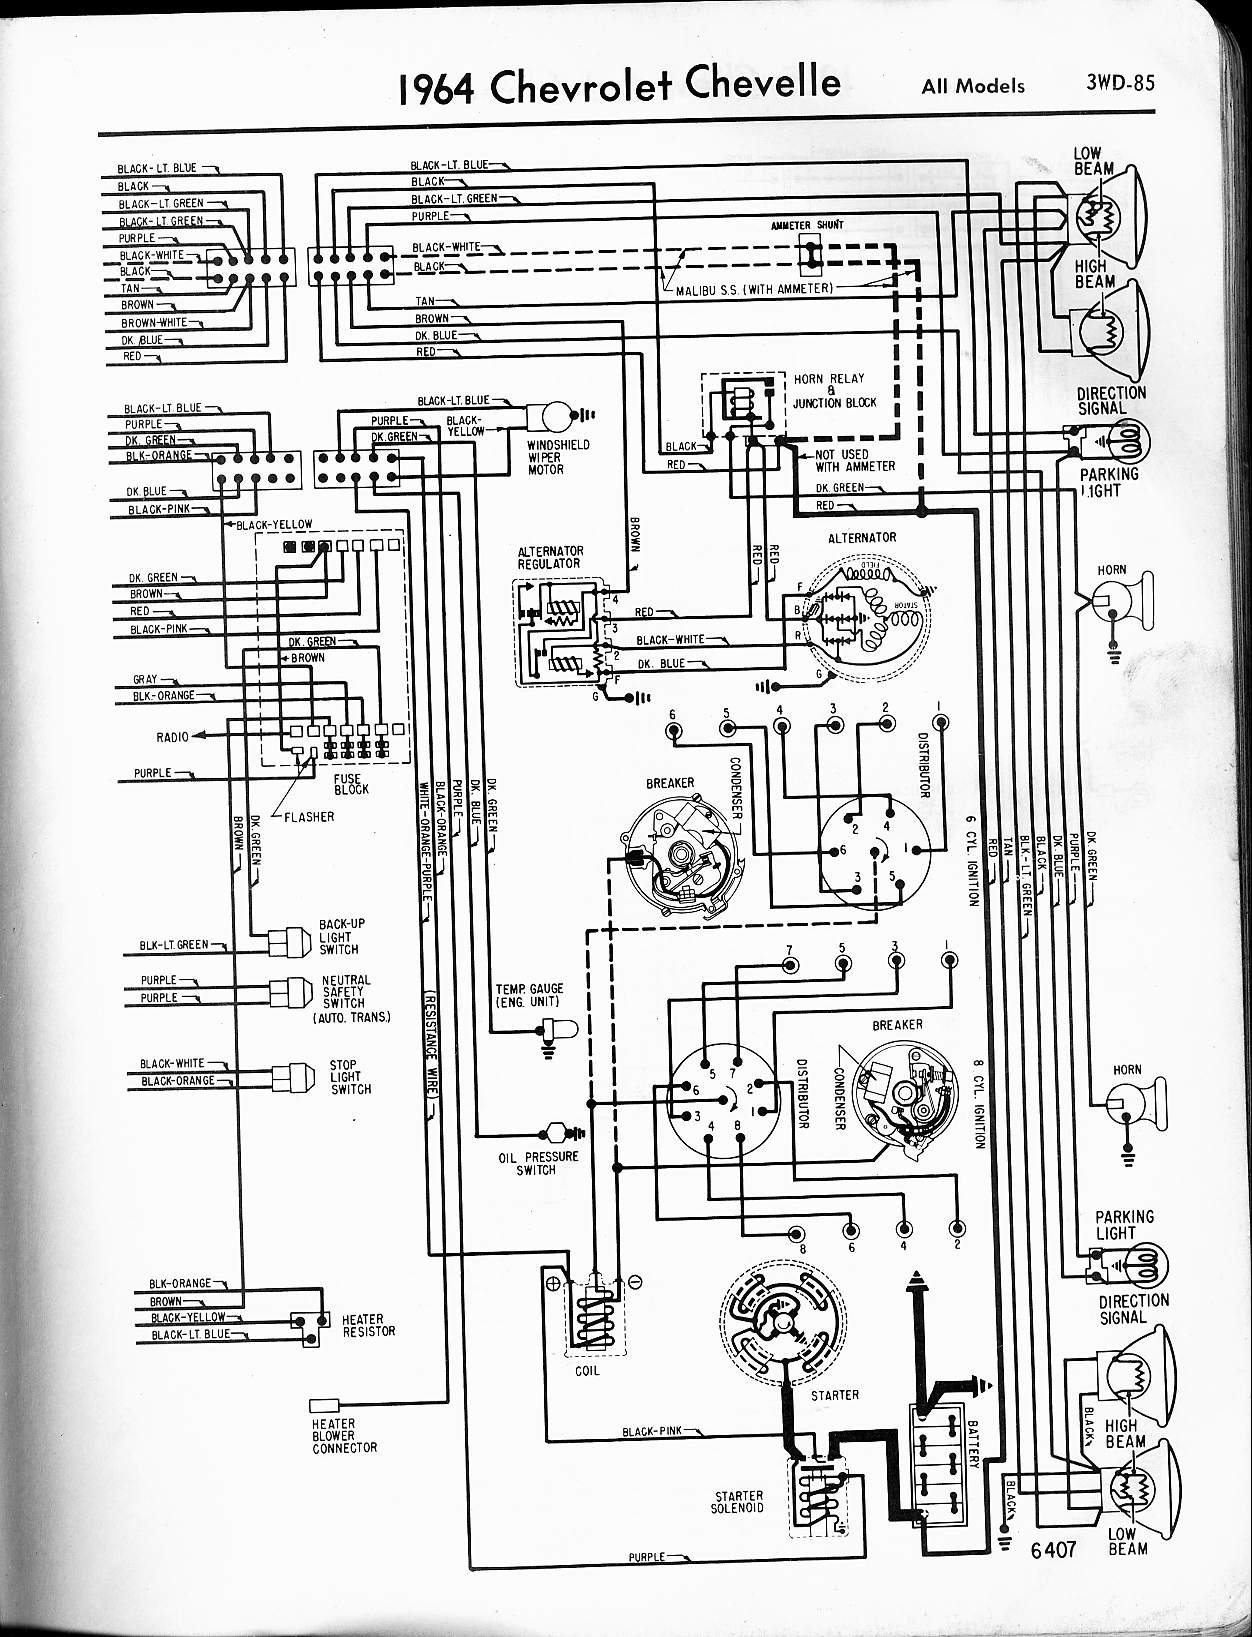 1965 Chevelle Wiring Diagram Reinvent Your 1964 Fairlane Manual Free Download Chevy Diagrams Rh Wizard Com